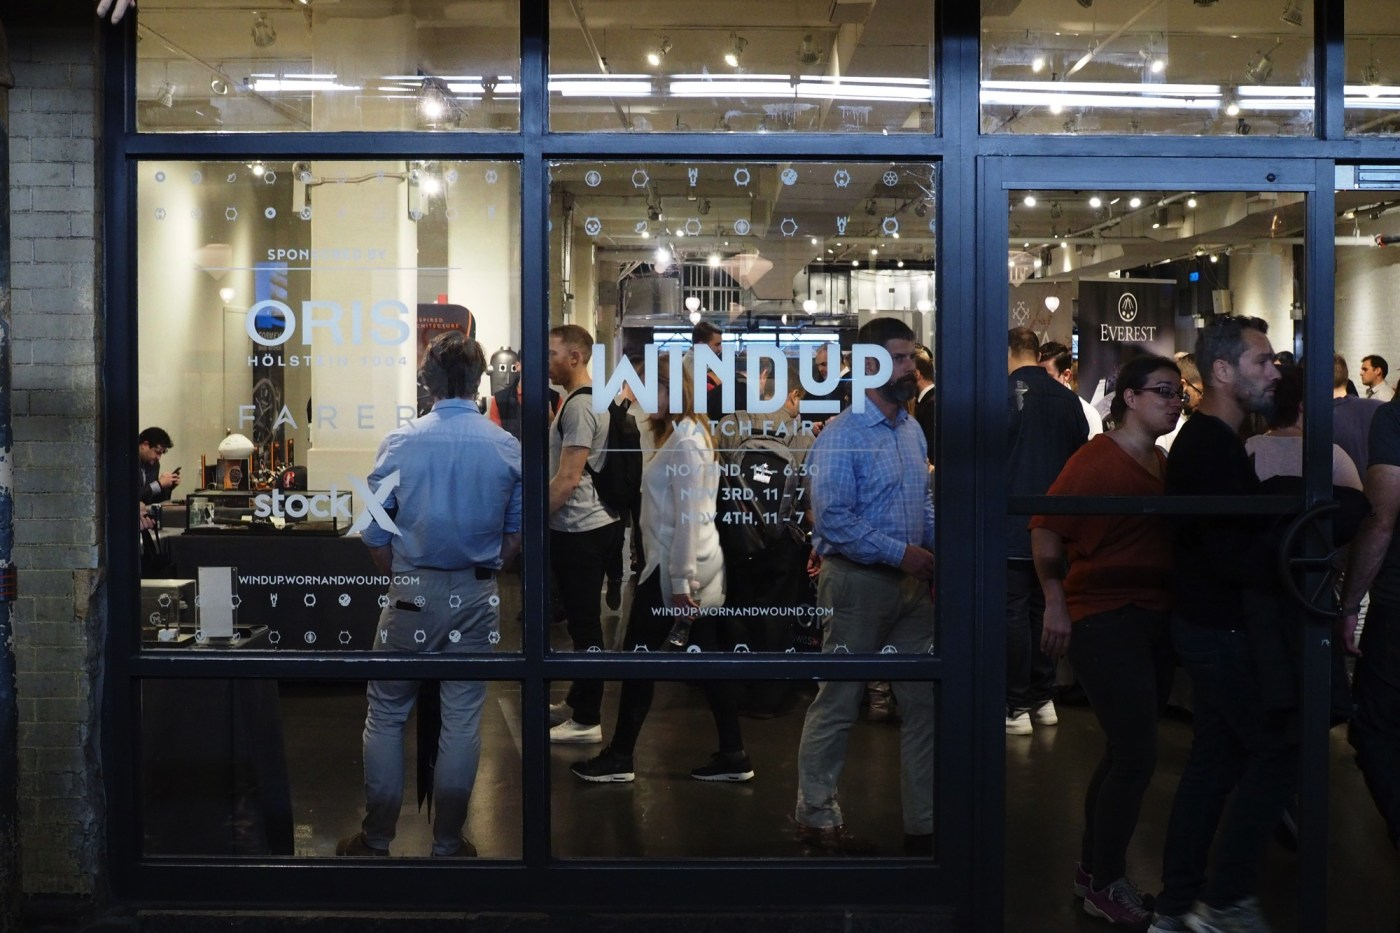 Windup Watch Fair NYC 2018 viewed from inside Chelsea Market